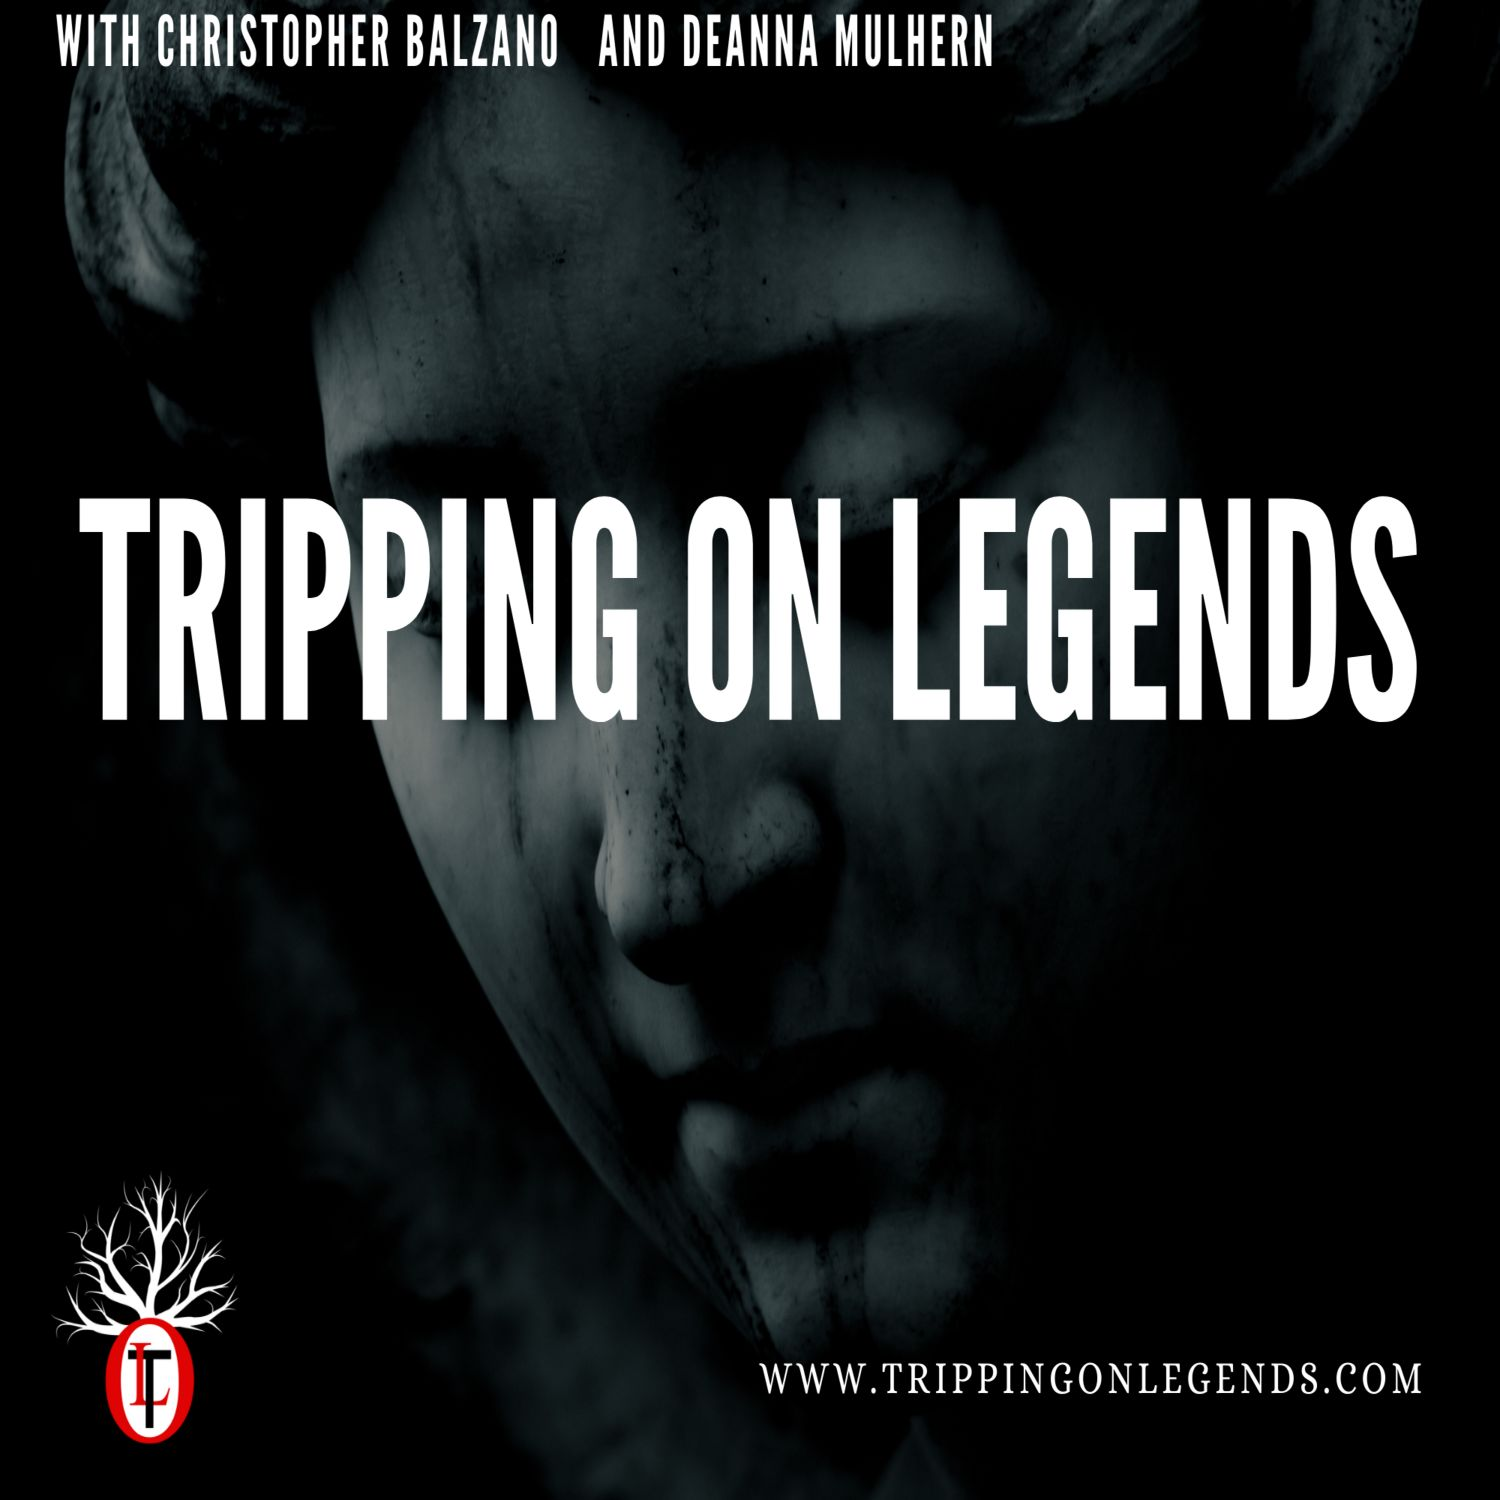 Tripping on legends